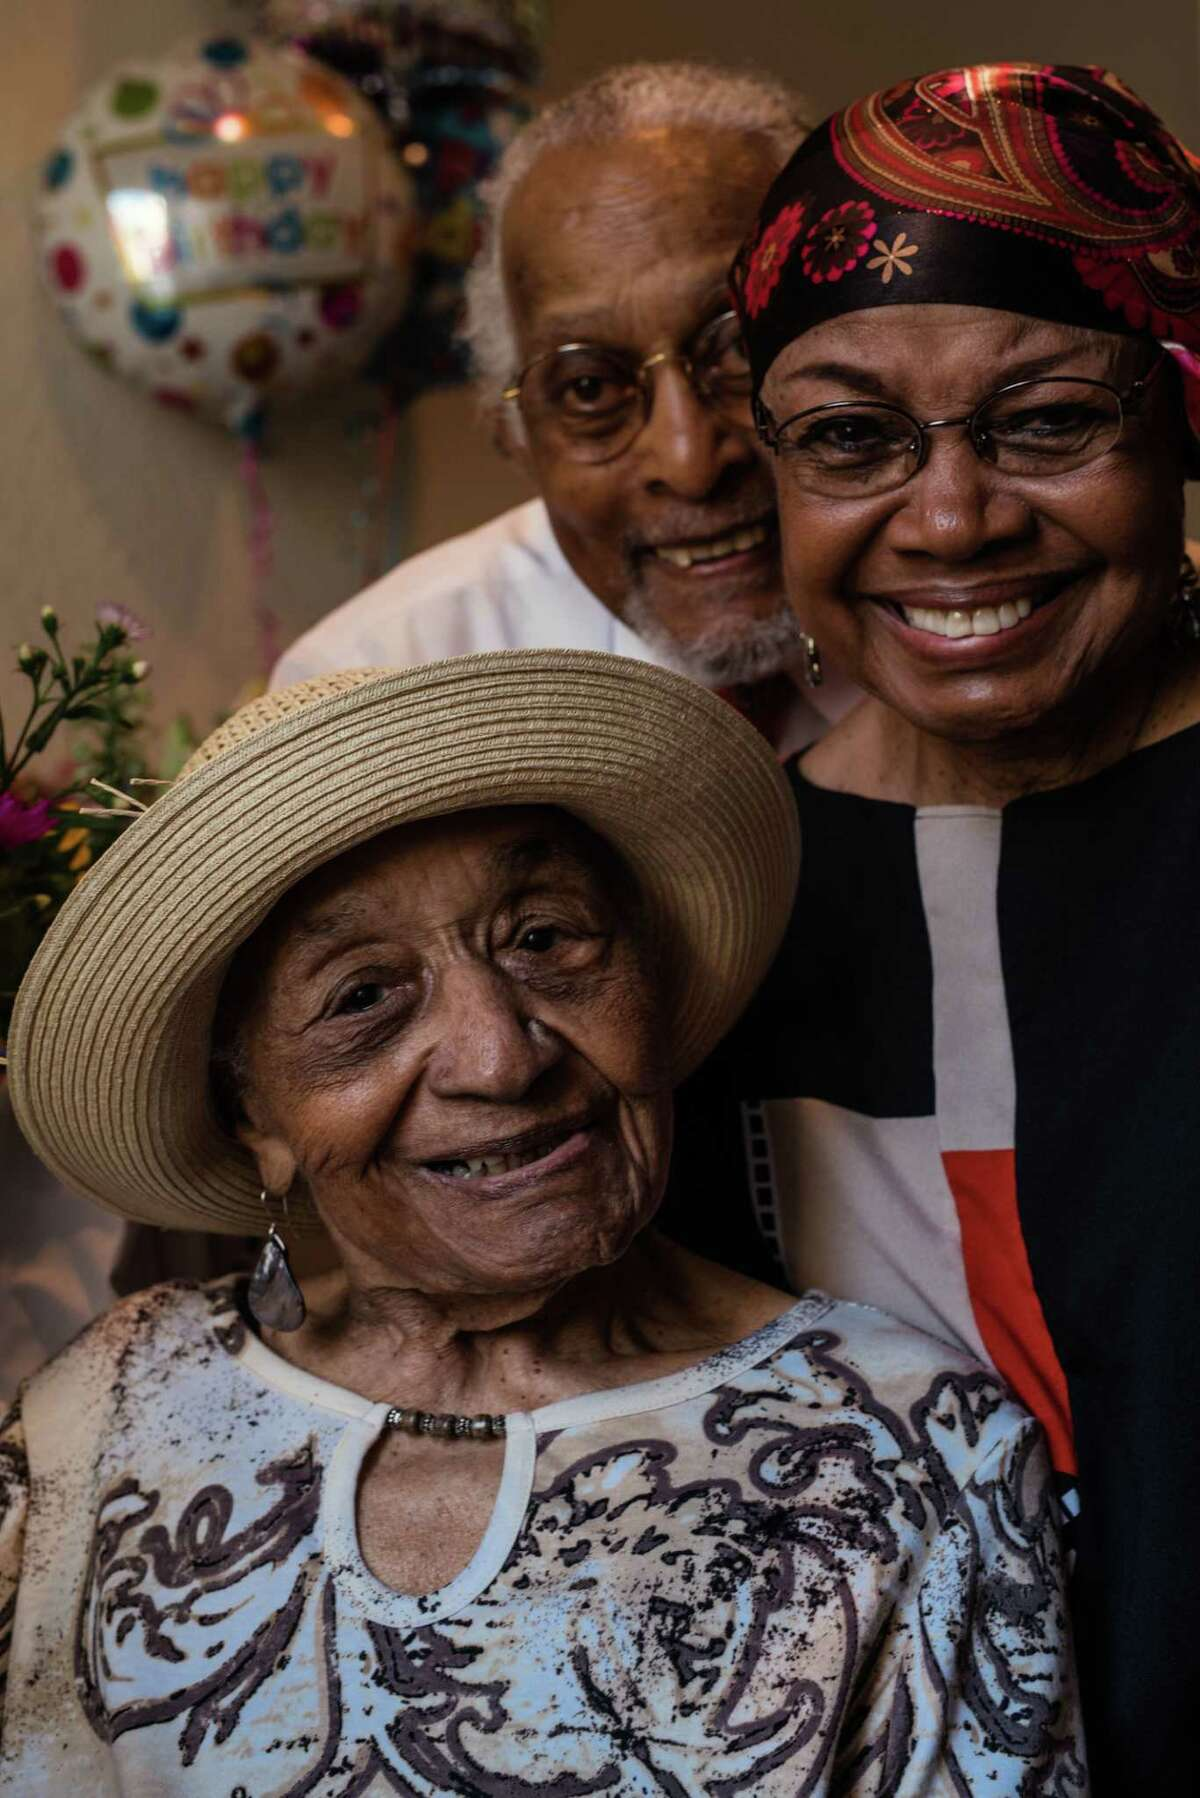 103-year-old Georgia Mitchell poses for a photo with her daughter, Bernice Satterwhite, and son in law, at her birthday party July 8, in the house that flooded during hurricane Harvey.